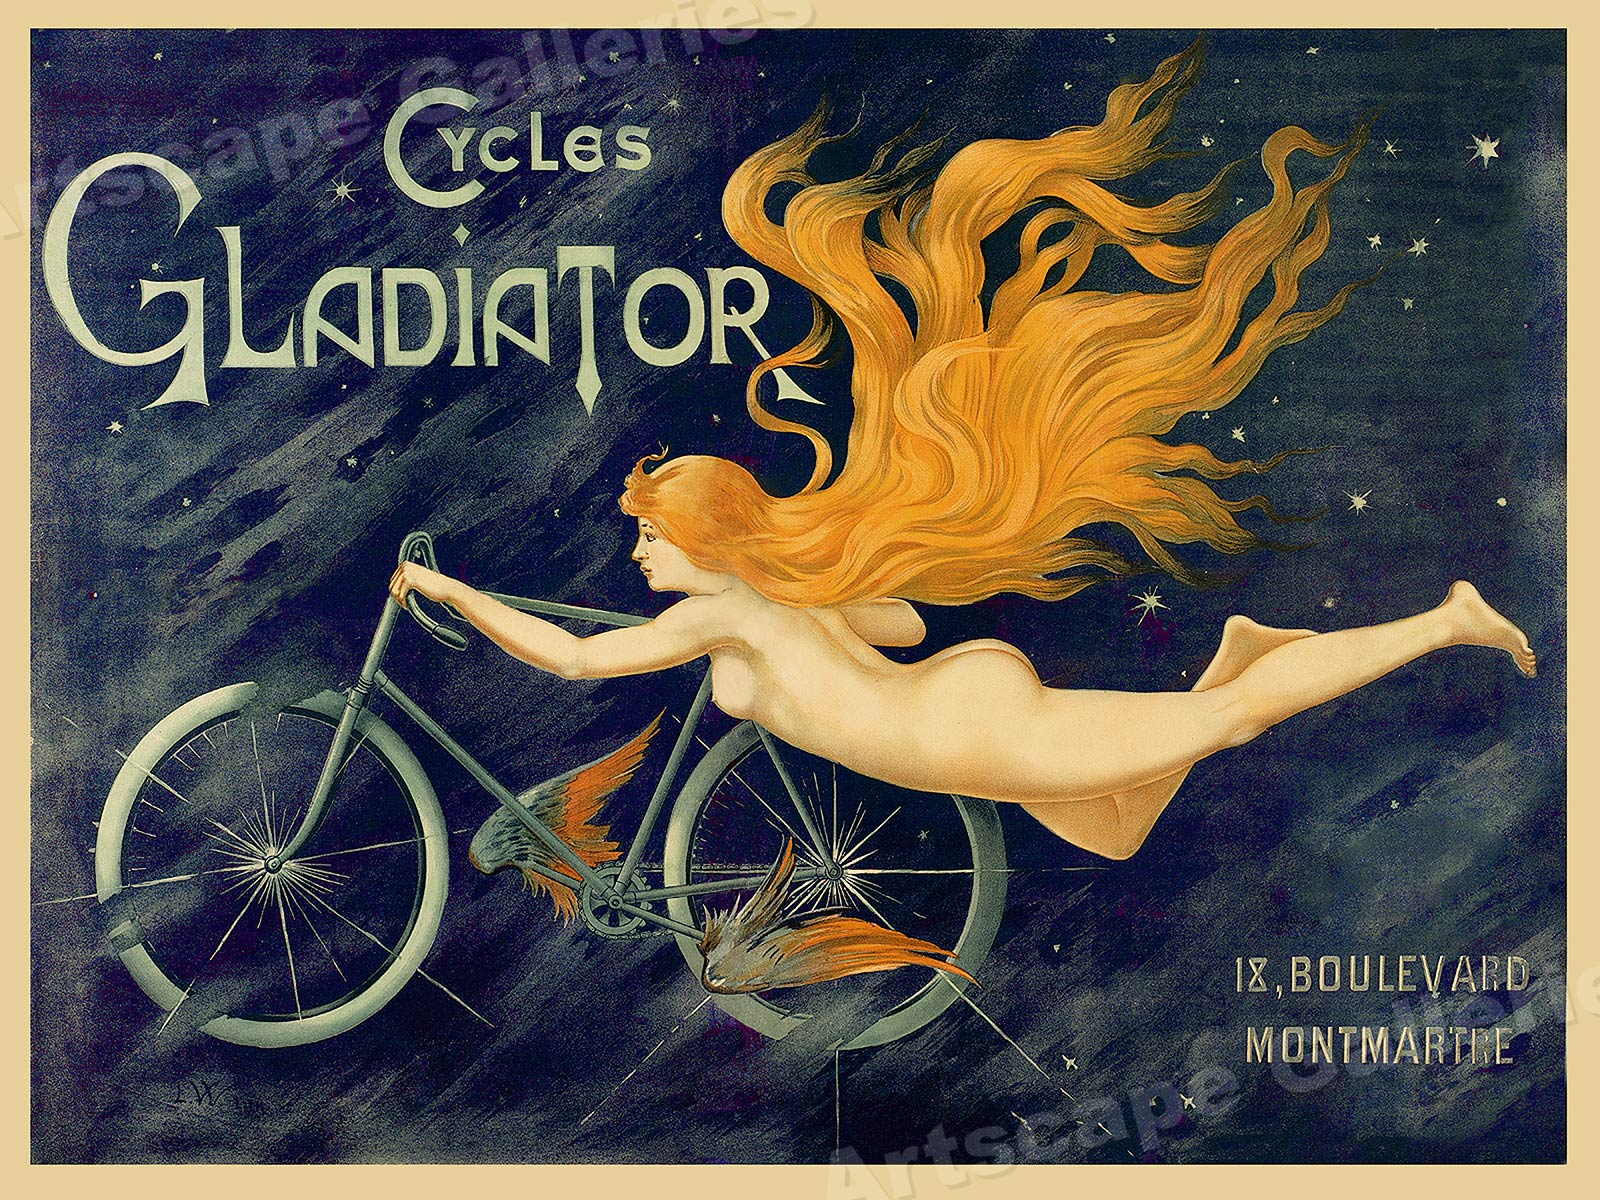 b311db7ebc5 Details about Cycles Gladiator Vintage Style 1895 Art Nouveau Bicycle  Poster - 24x32